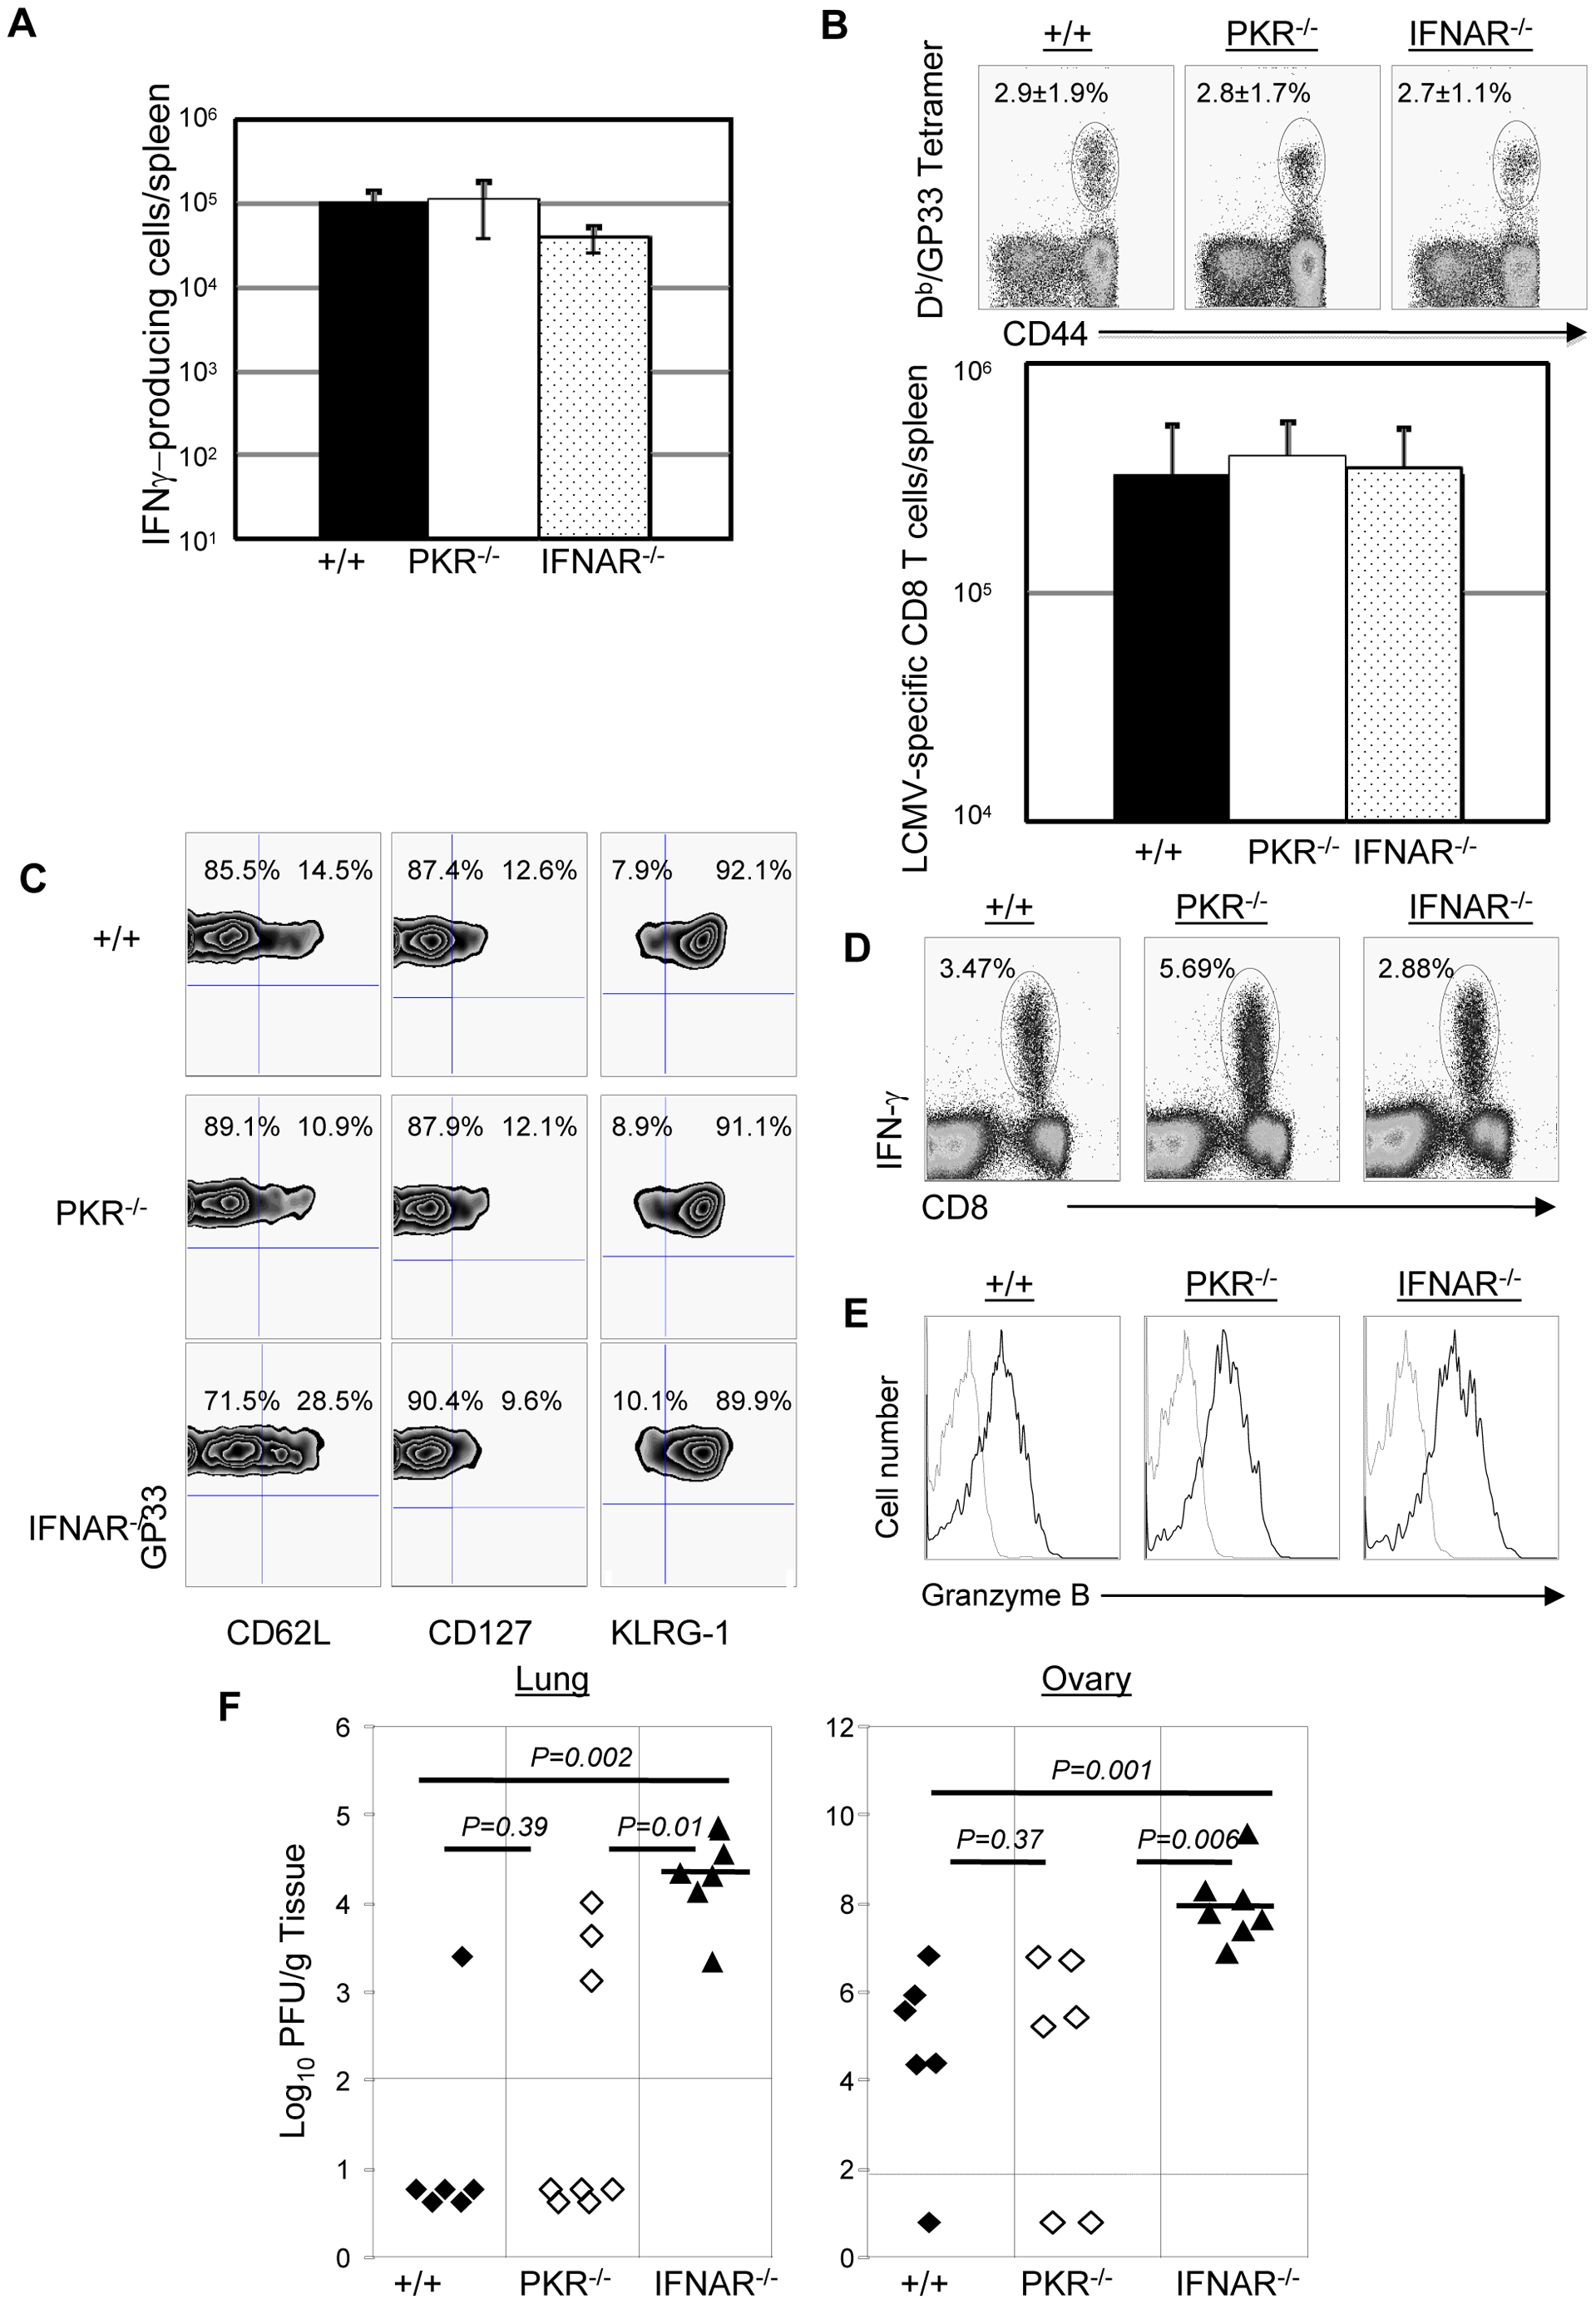 Secondary expansion of GP33-specific CD8<sup>+</sup> T cells and protection against vaccinia virus in +/+, PKR<sup>−/−</sup>, and IFNAR<sup>−/−</sup> mice.